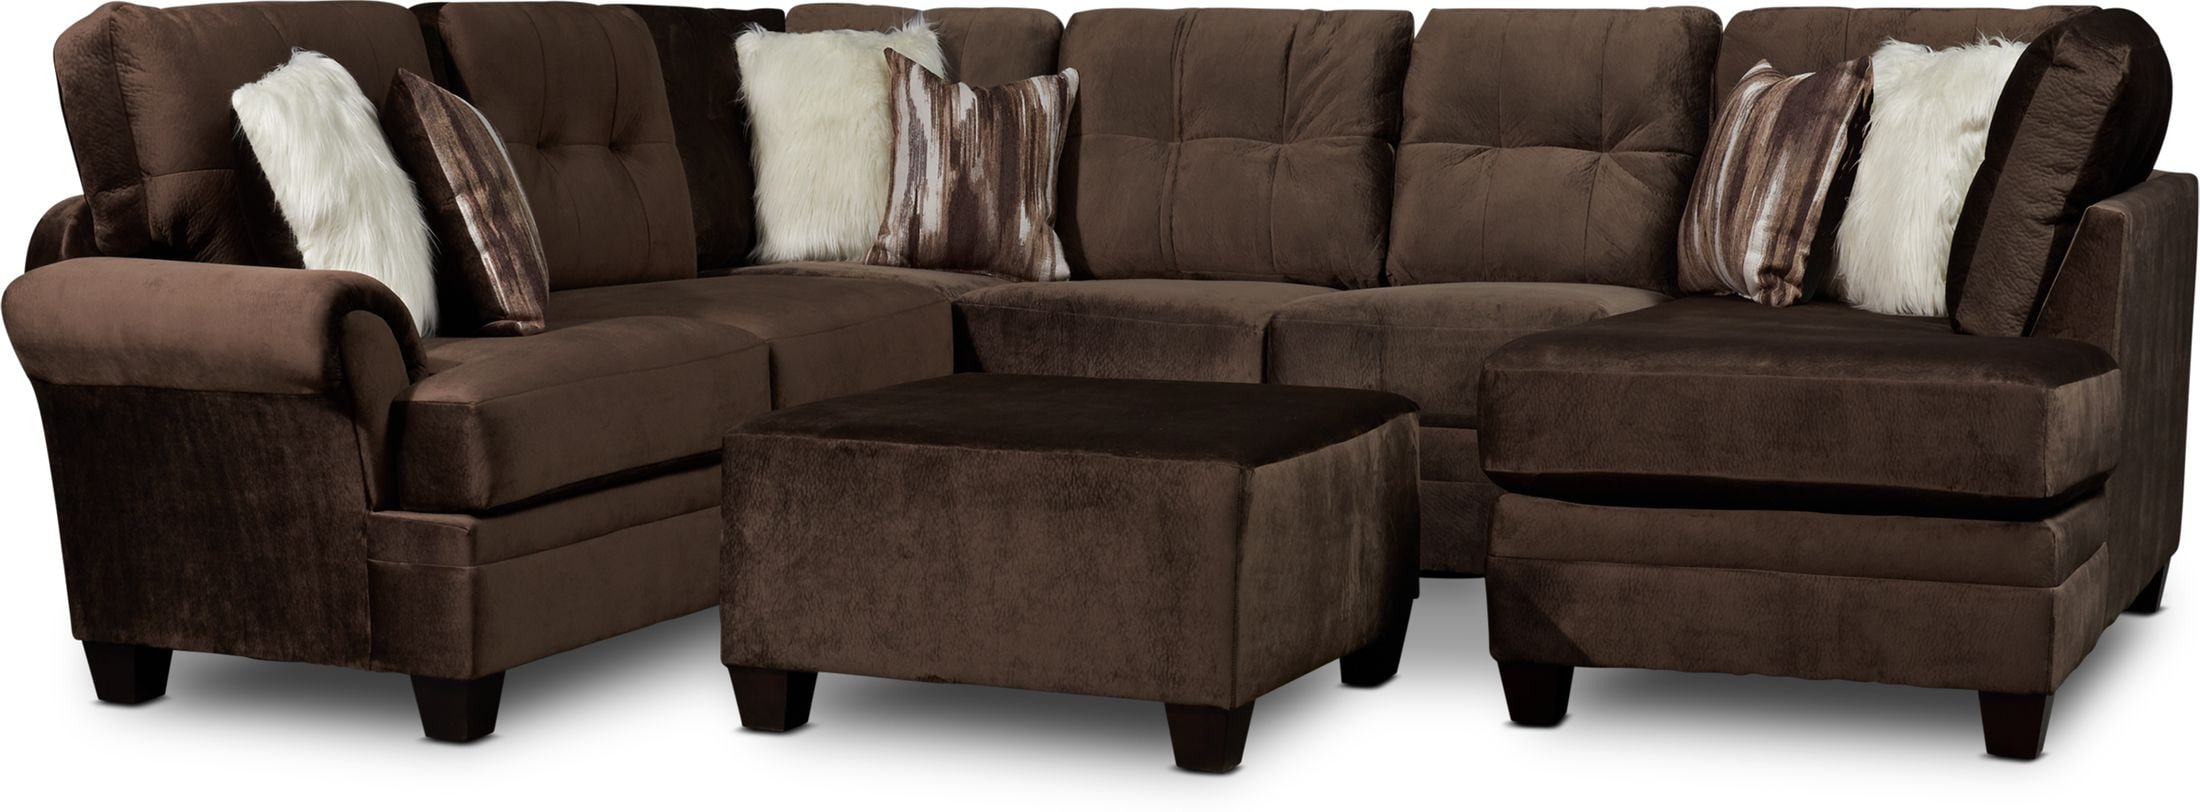 Living Room Furniture - Cordelle 3-Piece Sectional with Chaise and Ottoman